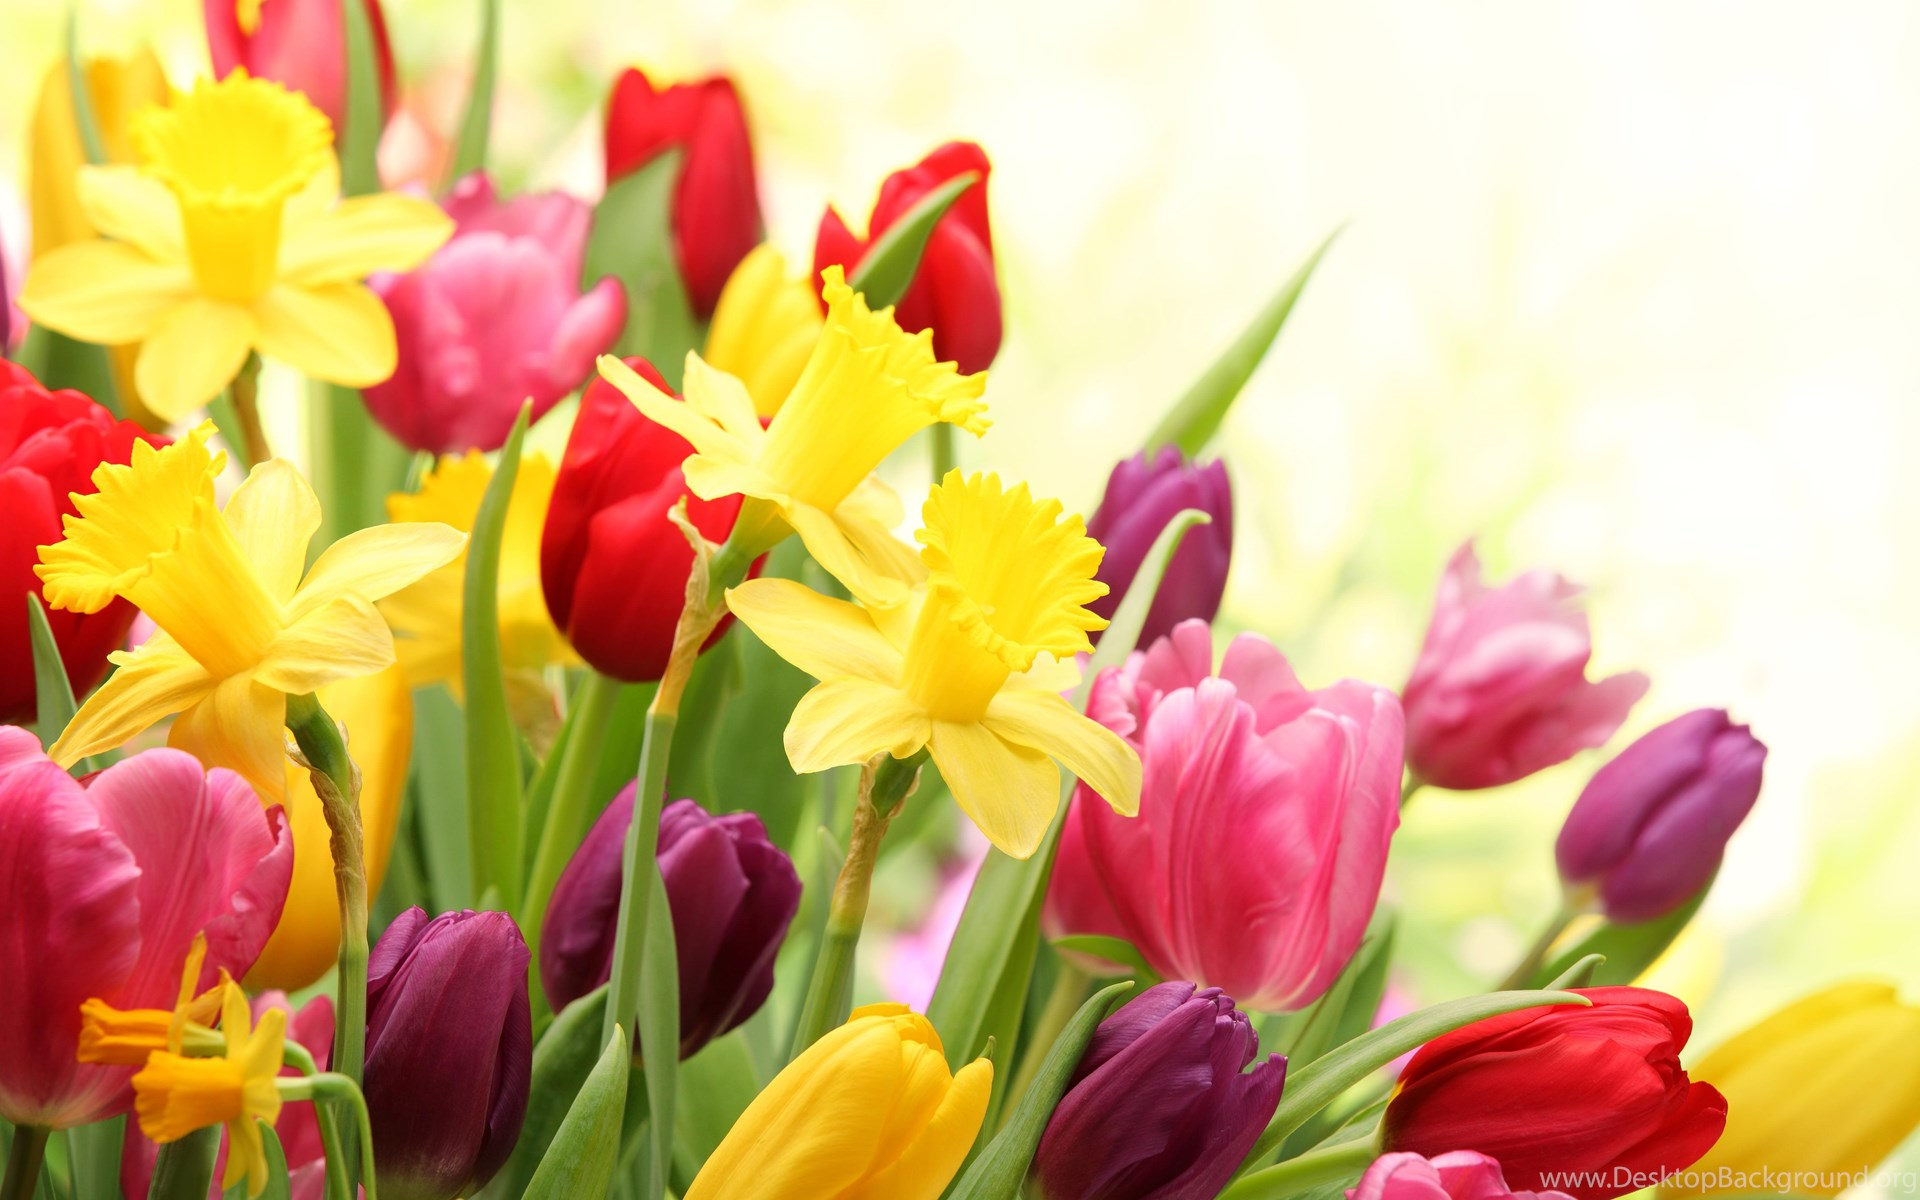 Spring flowers wallpaper desktop background popular mightylinksfo